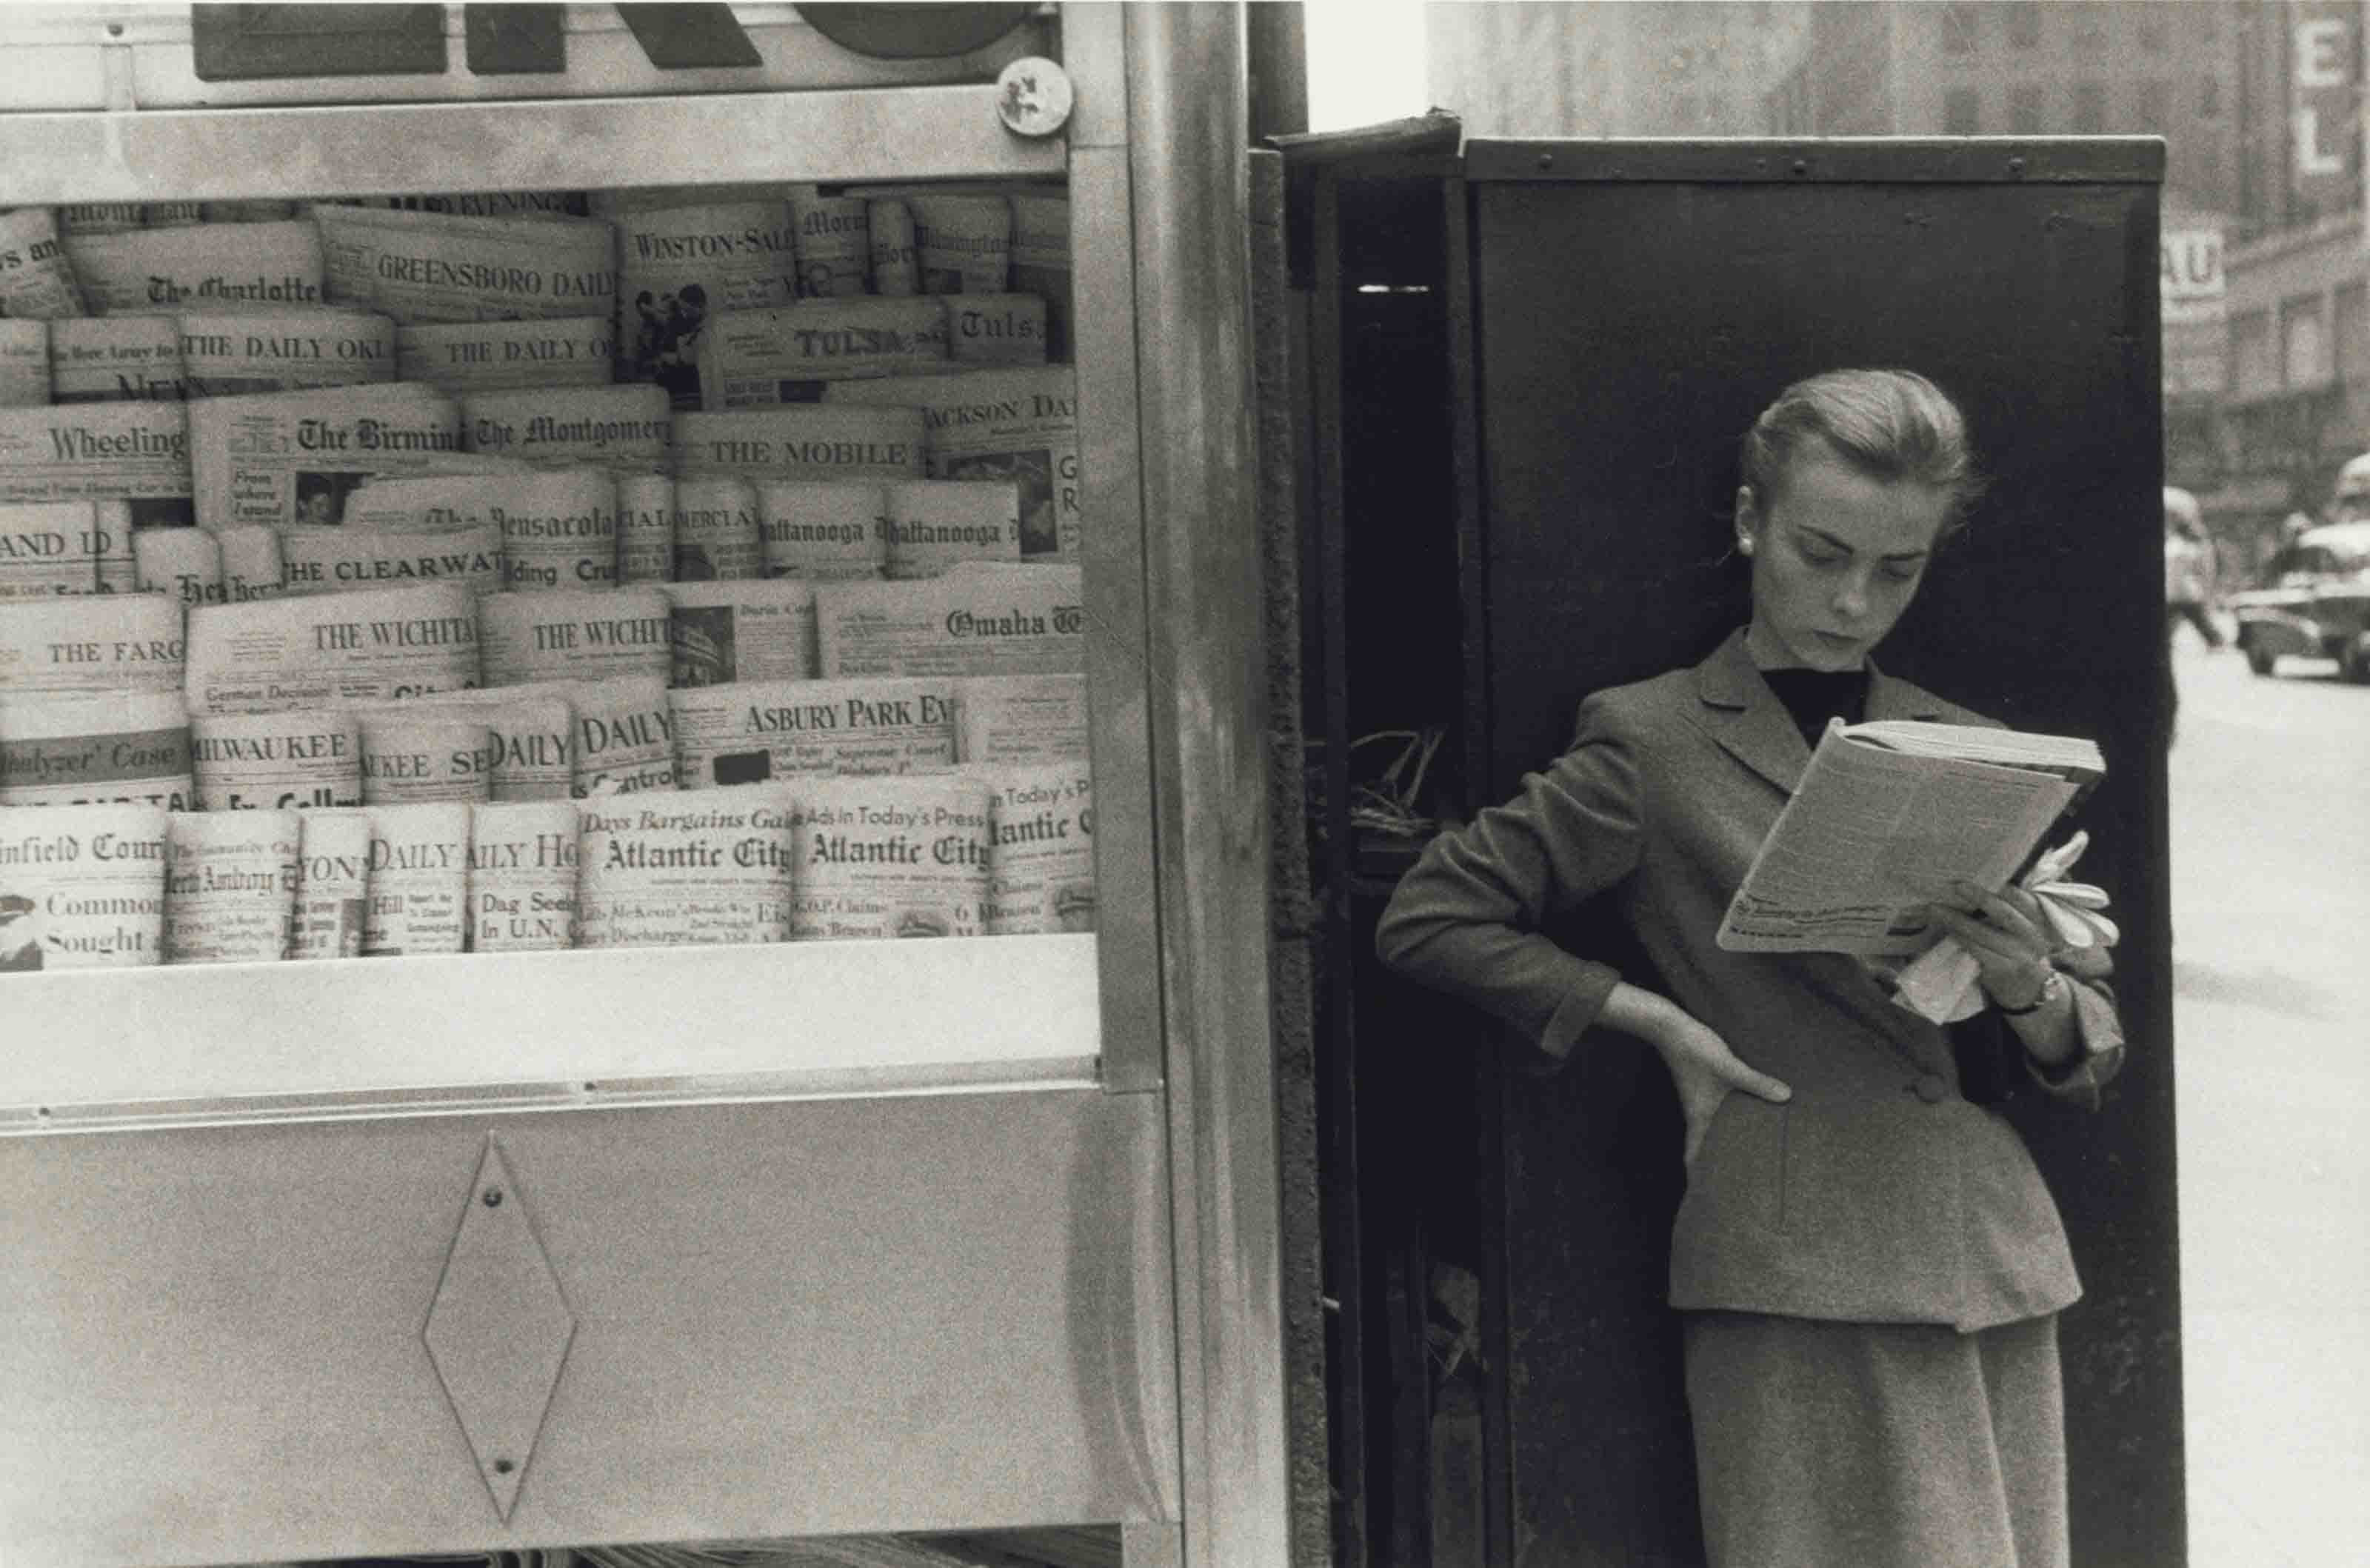 Elbowing an Out-of-Town Newstand, c. 1952